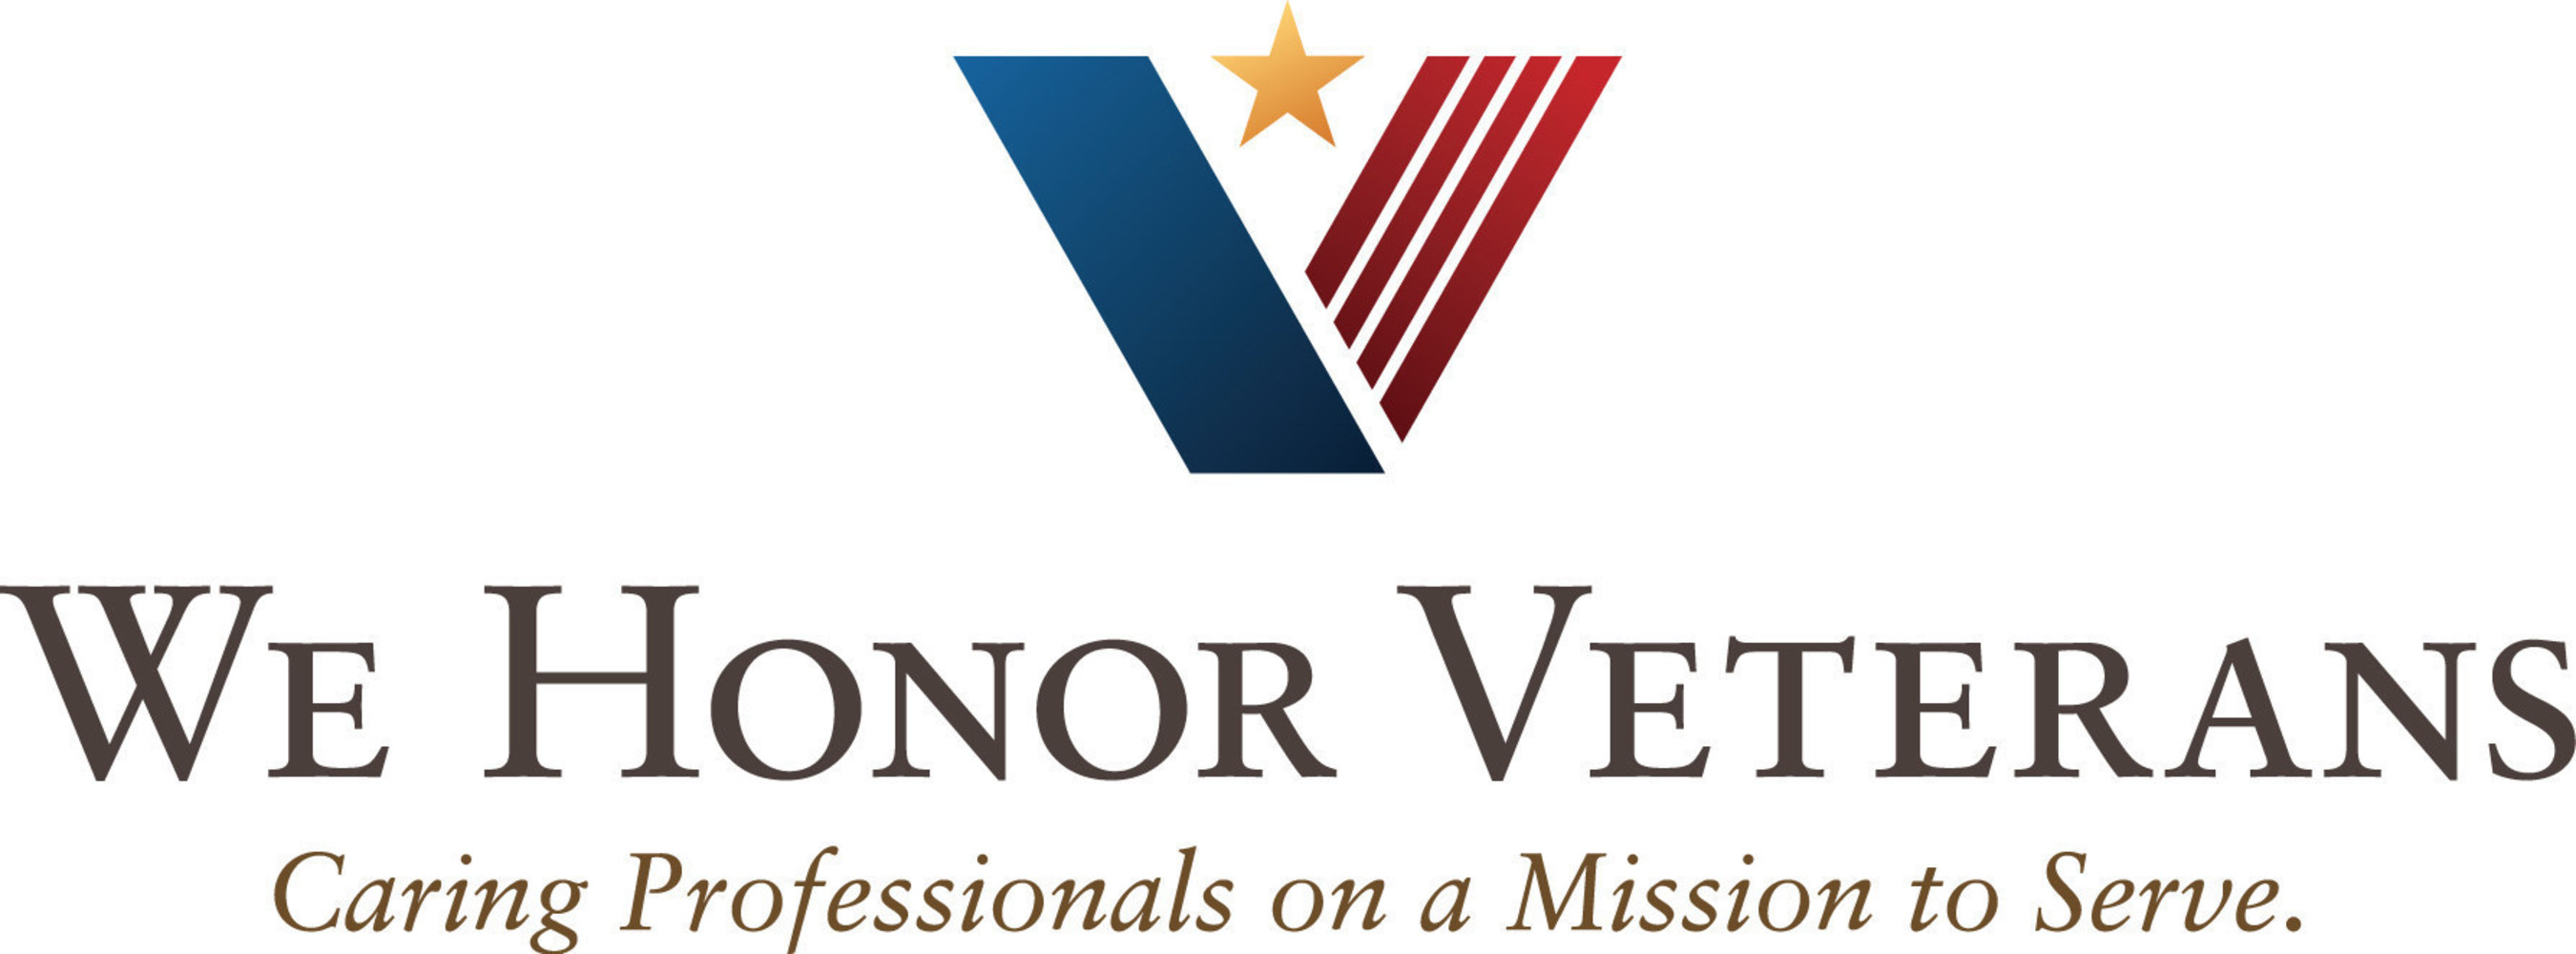 We Honor Veterans' partners address the unique healthcare needs of Veterans, both physical and emotional, including the psychological toll of war and how it impacts their end-of-life journey.